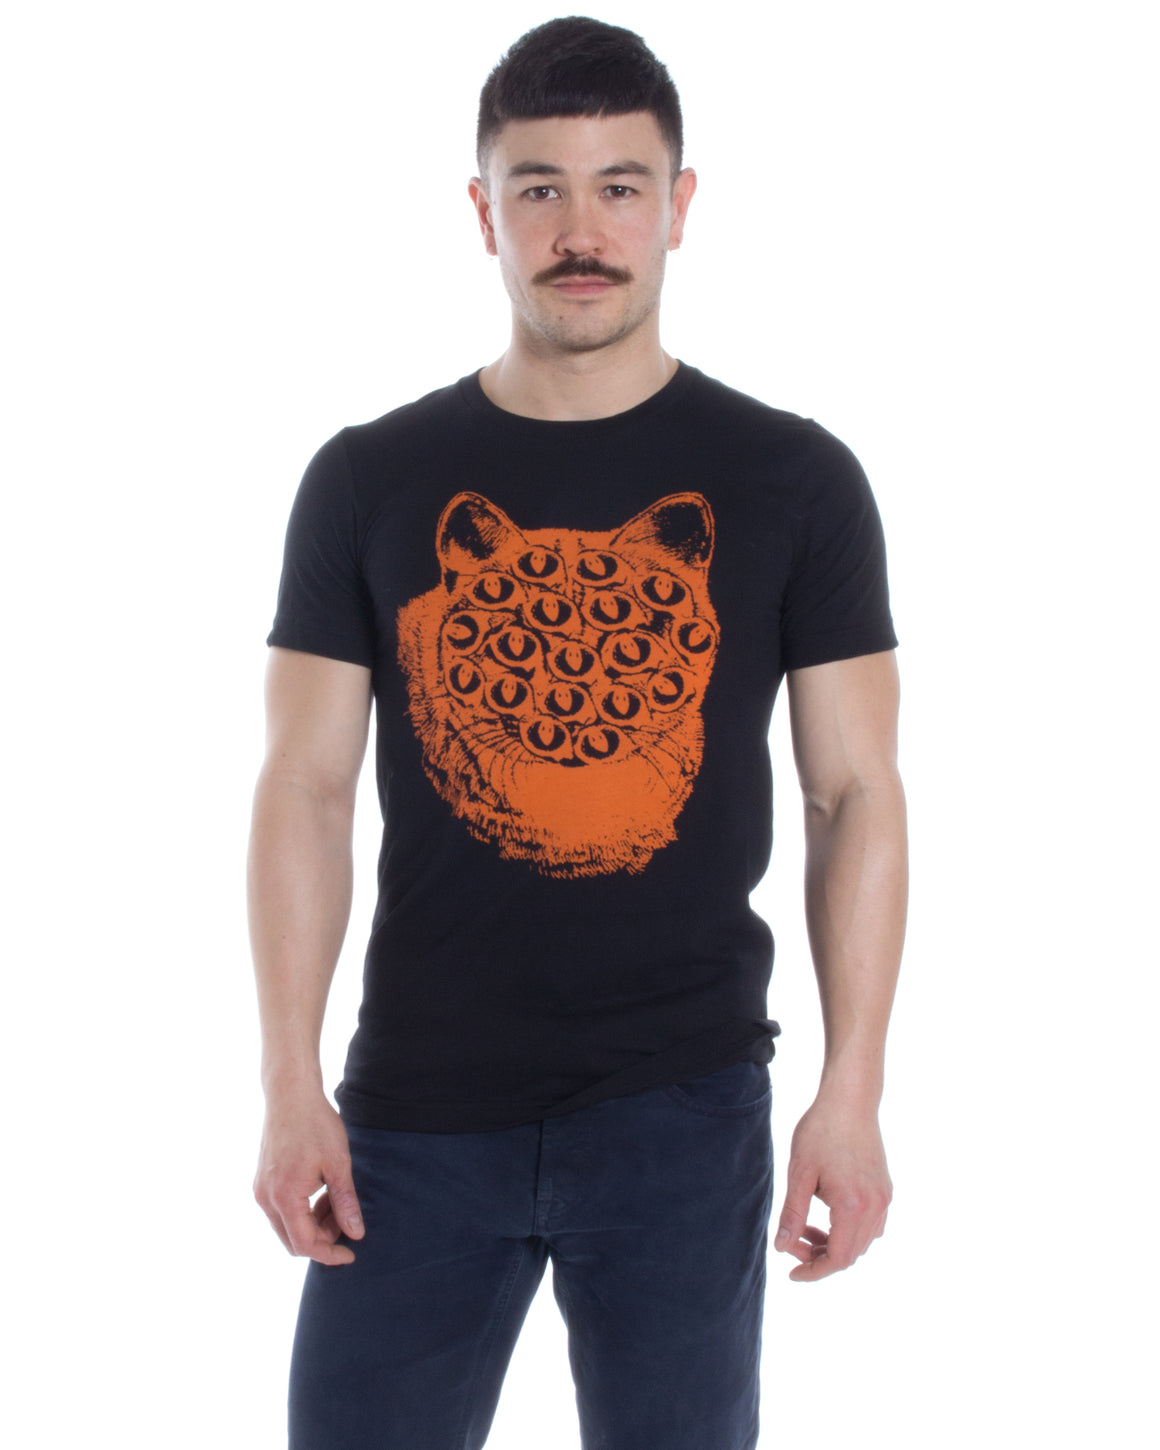 Mutant Kitty T Shirt. Black